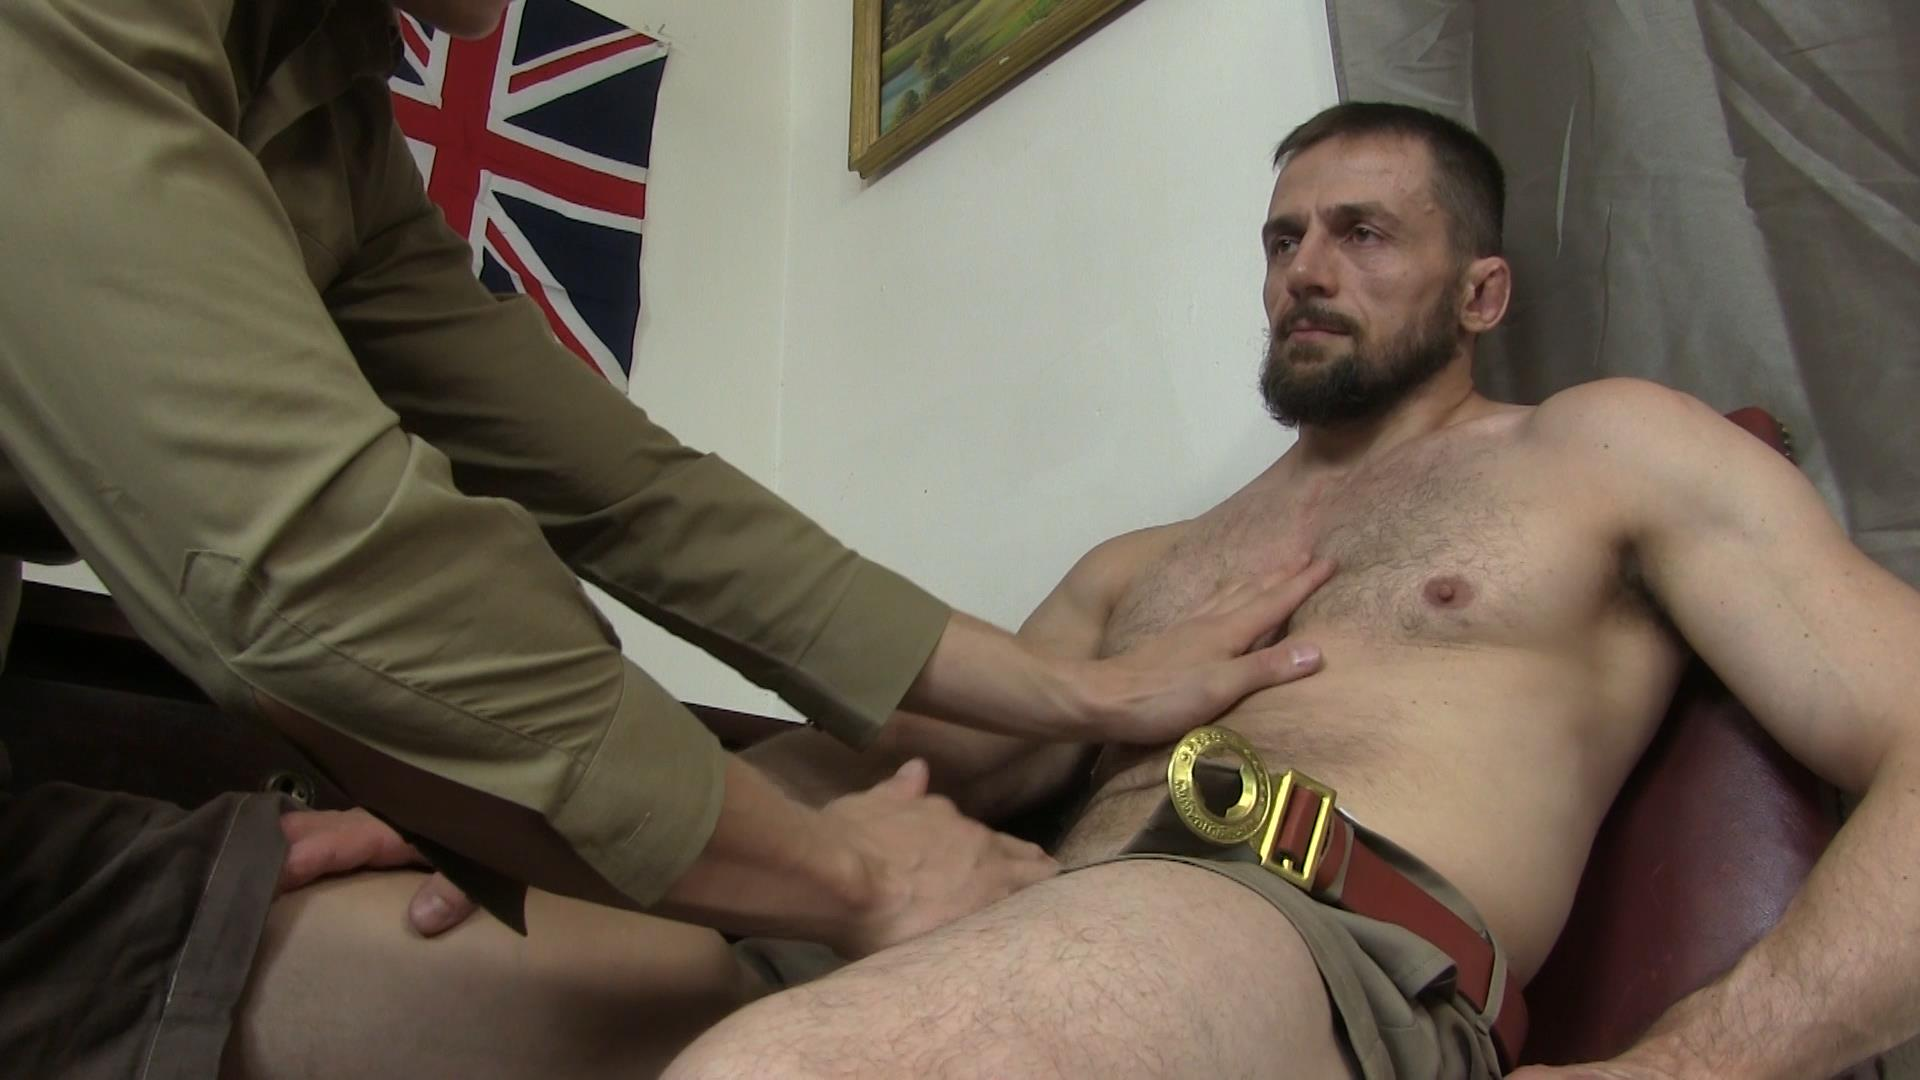 Bareback Me Daddy Eric Lenn and Ryan Torres Twink Fucked By Older man Amateur Gay Porn 06 Twink Gets Bareback Fucked By An Older Scoutmaster